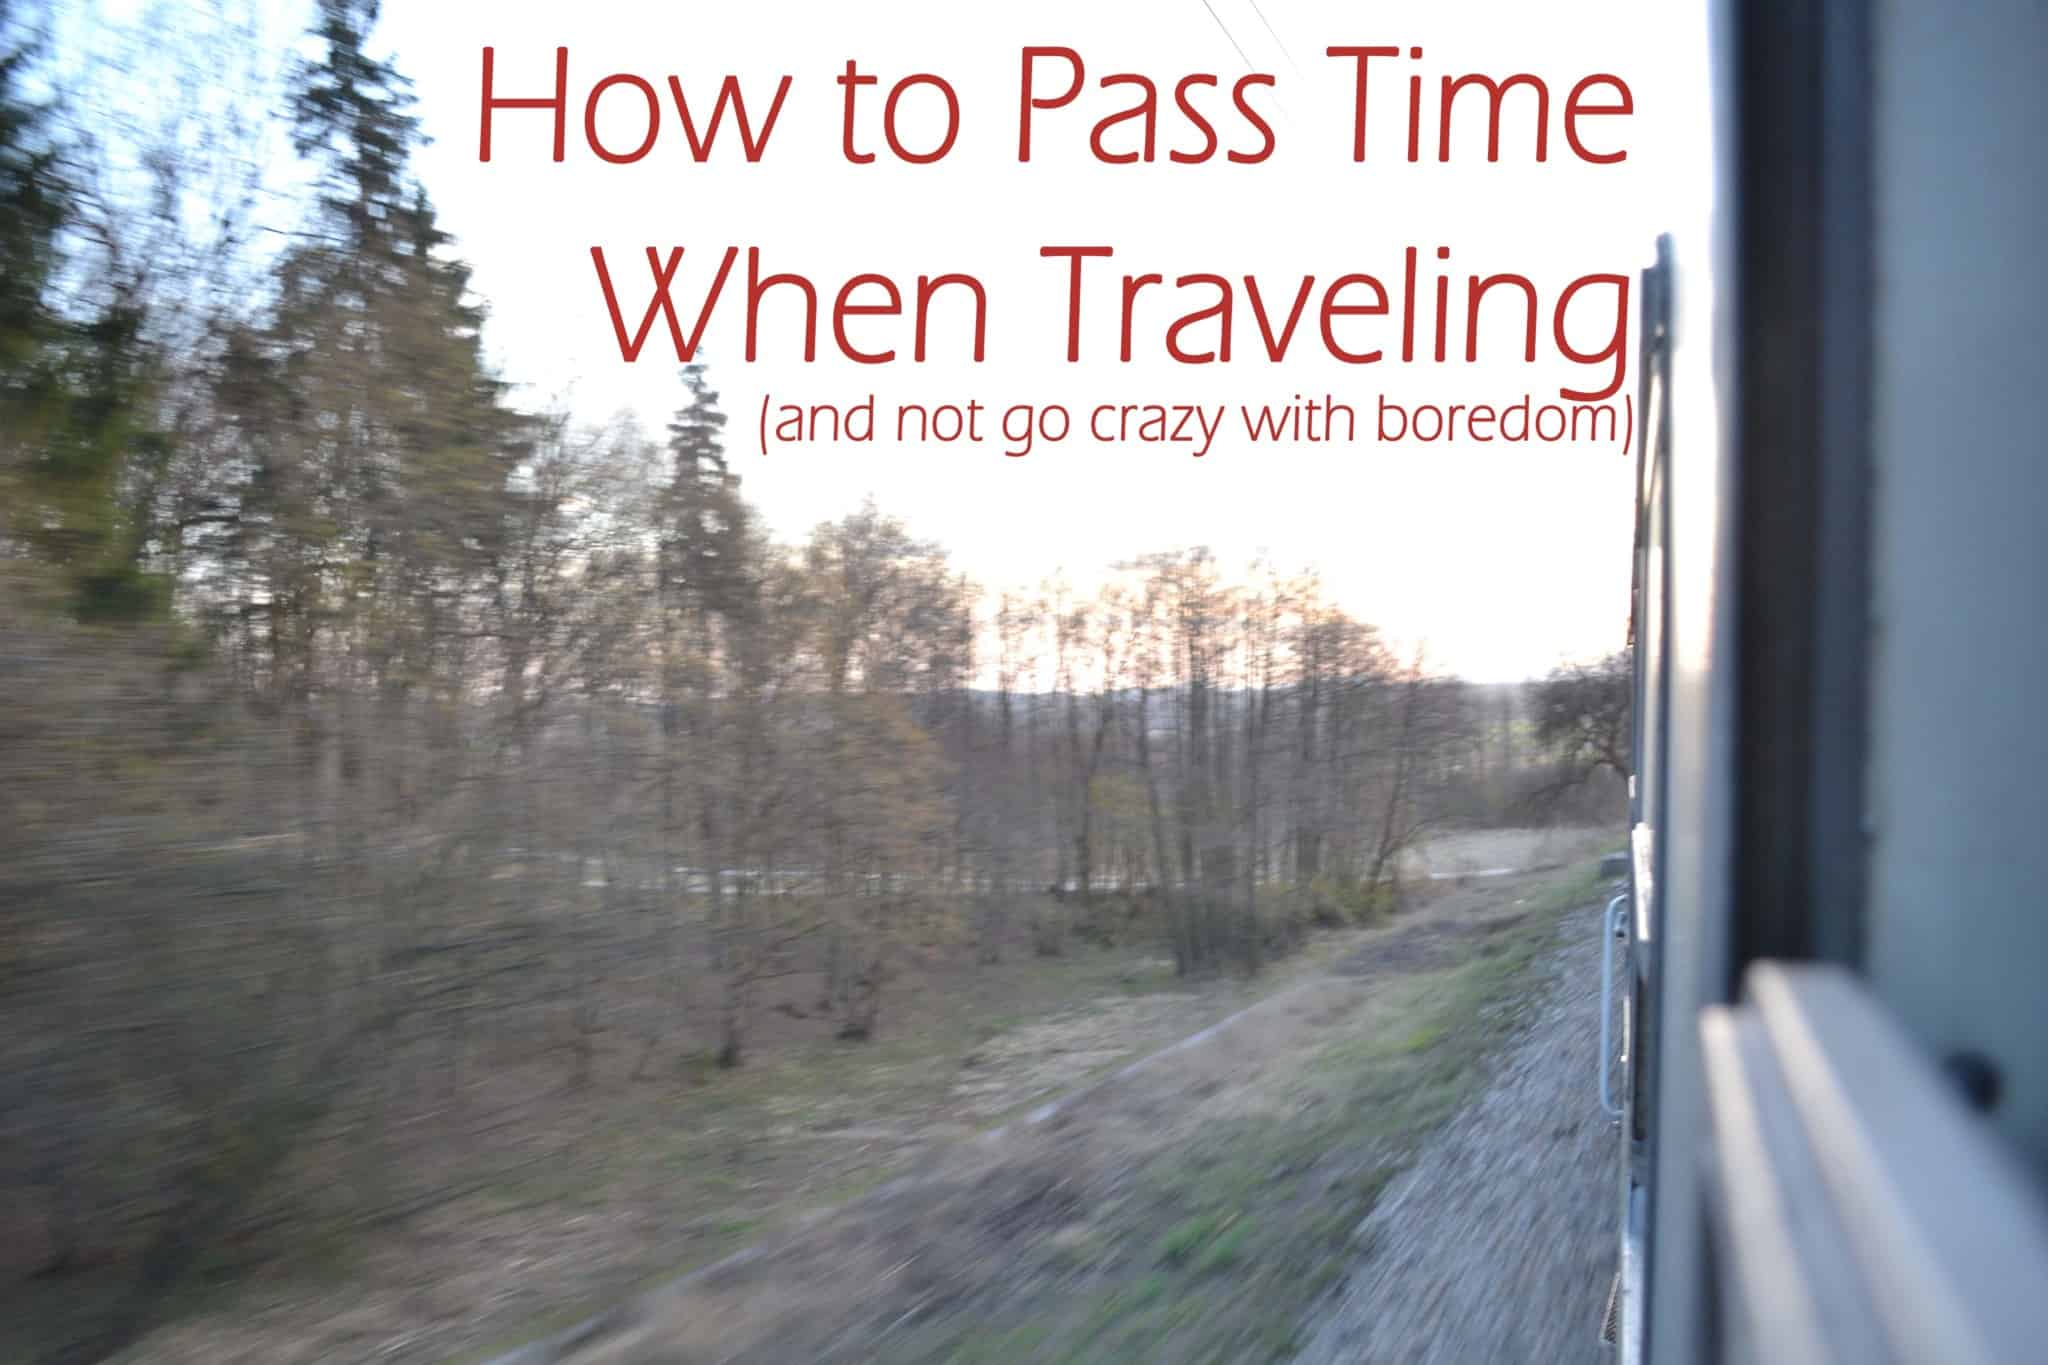 How to Pass Time When Traveling (and not go crazy with boredom)